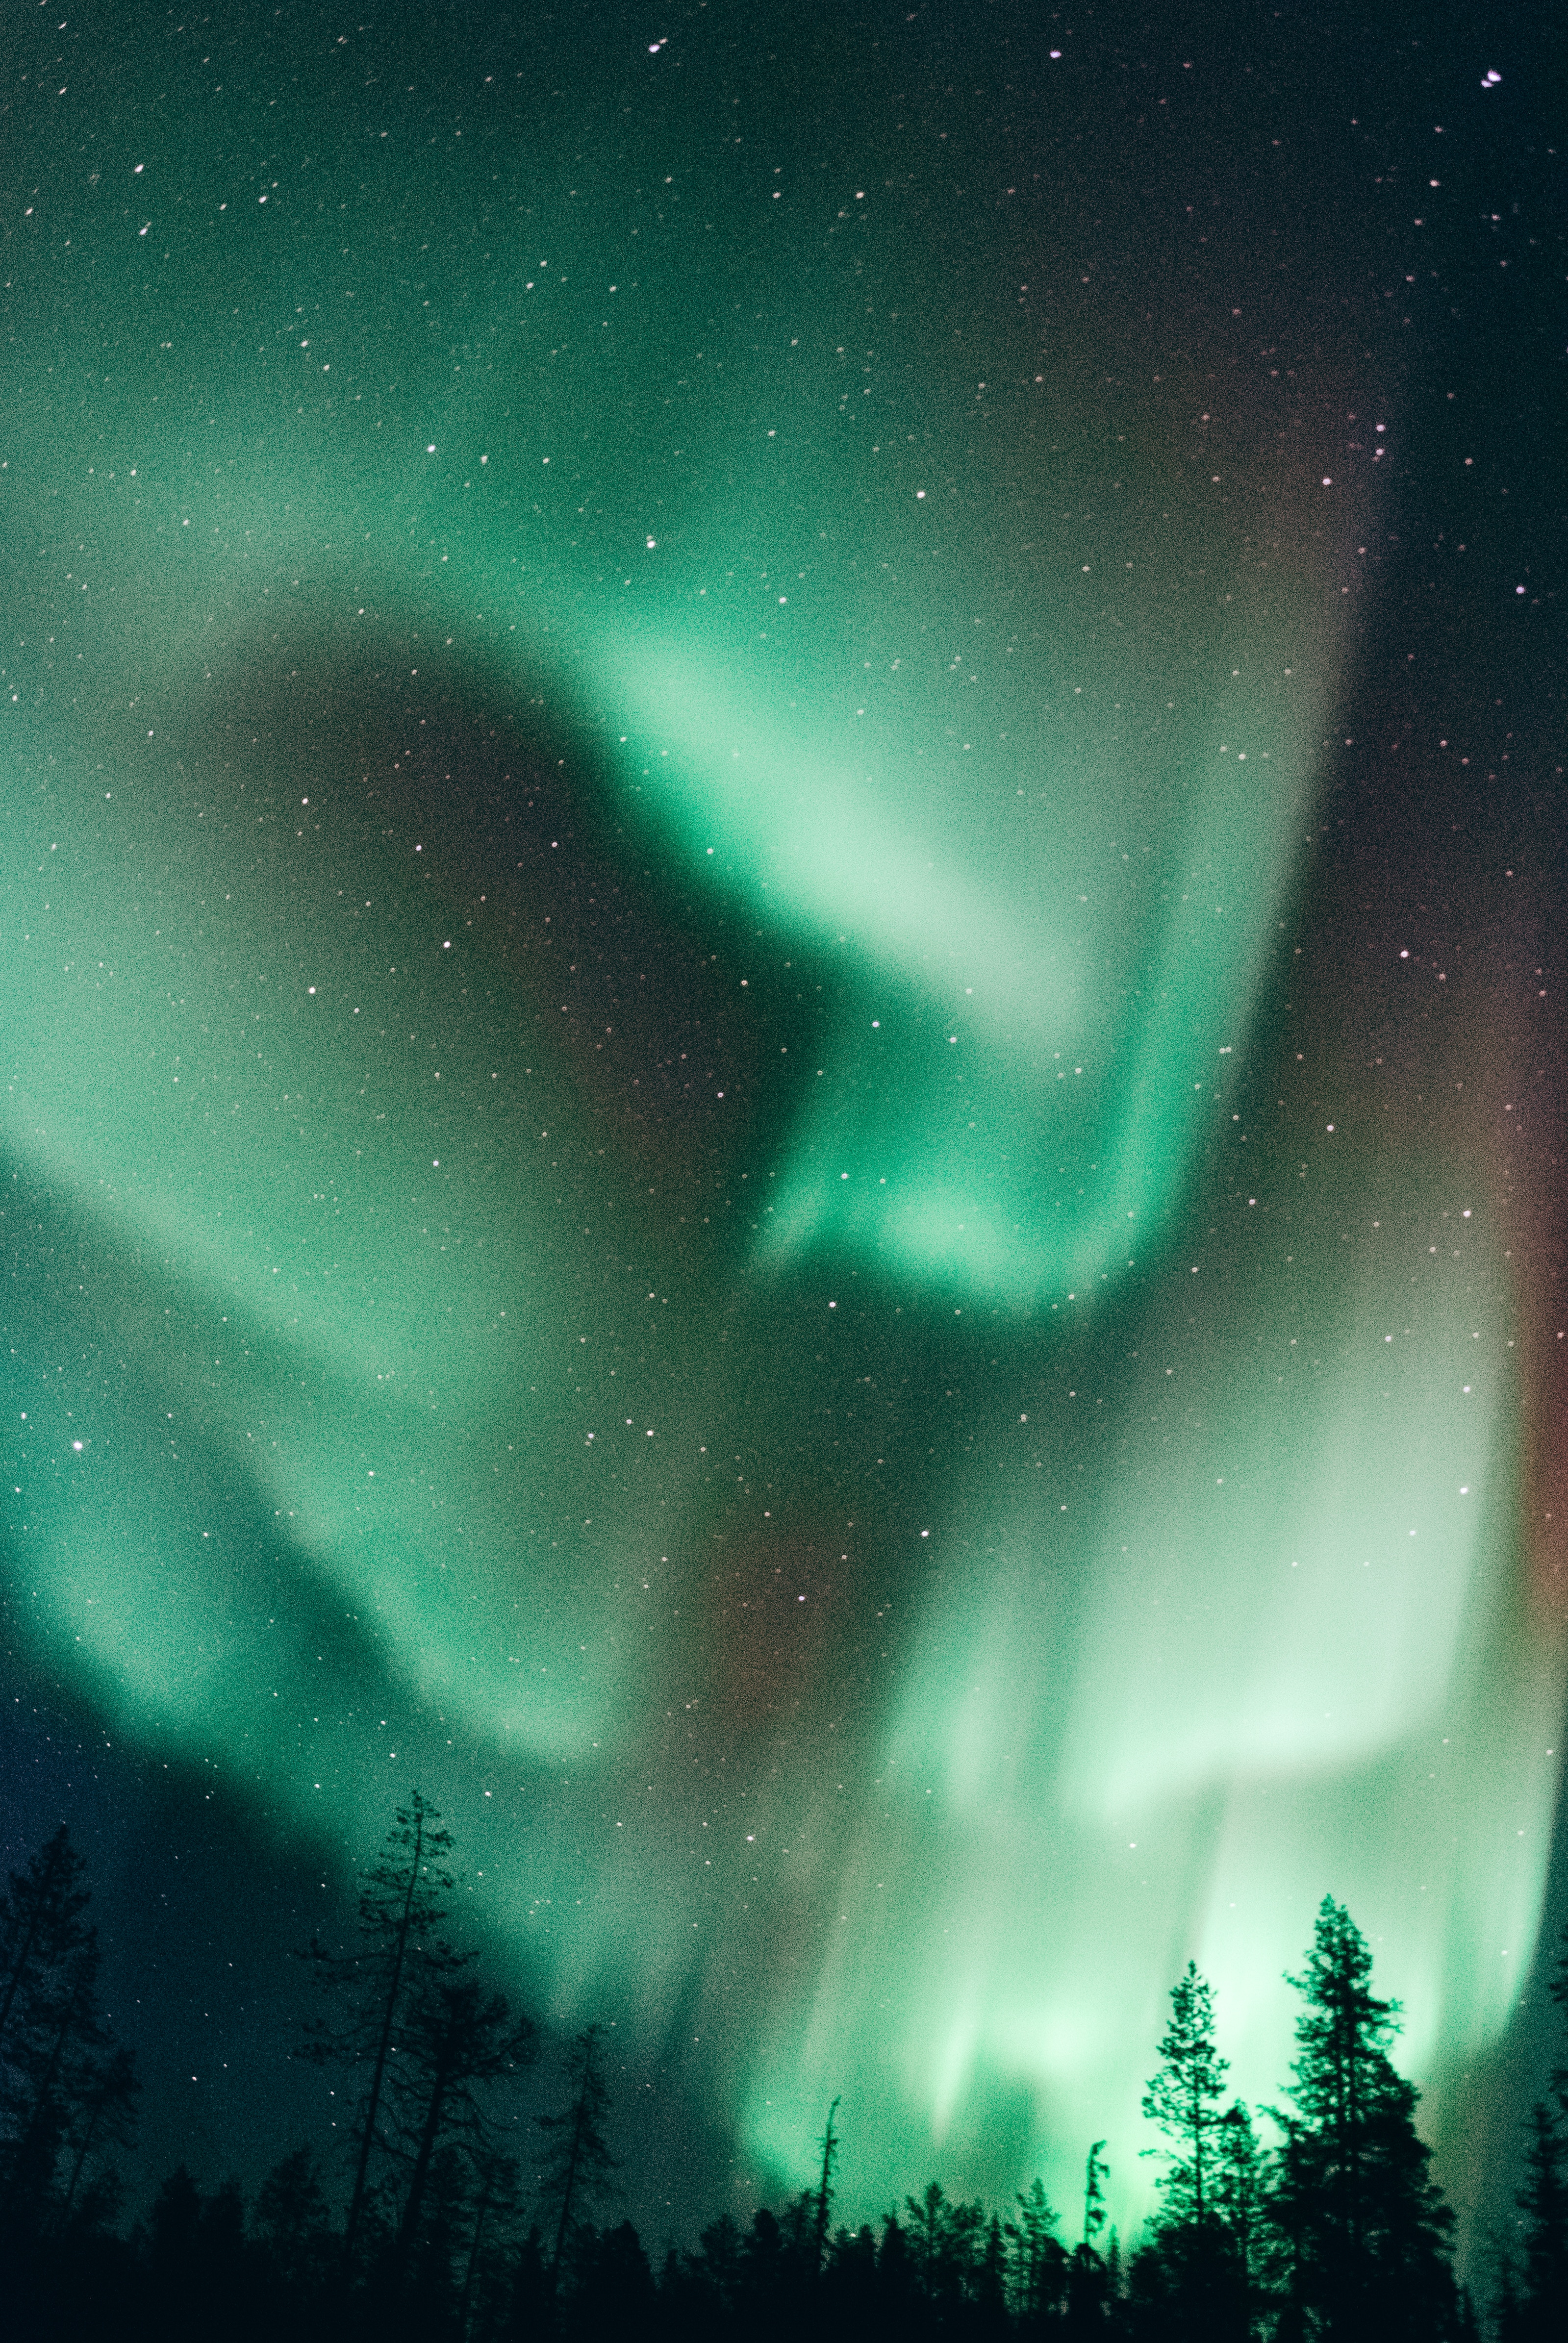 Image of the Northern Lights glowing green in Finland